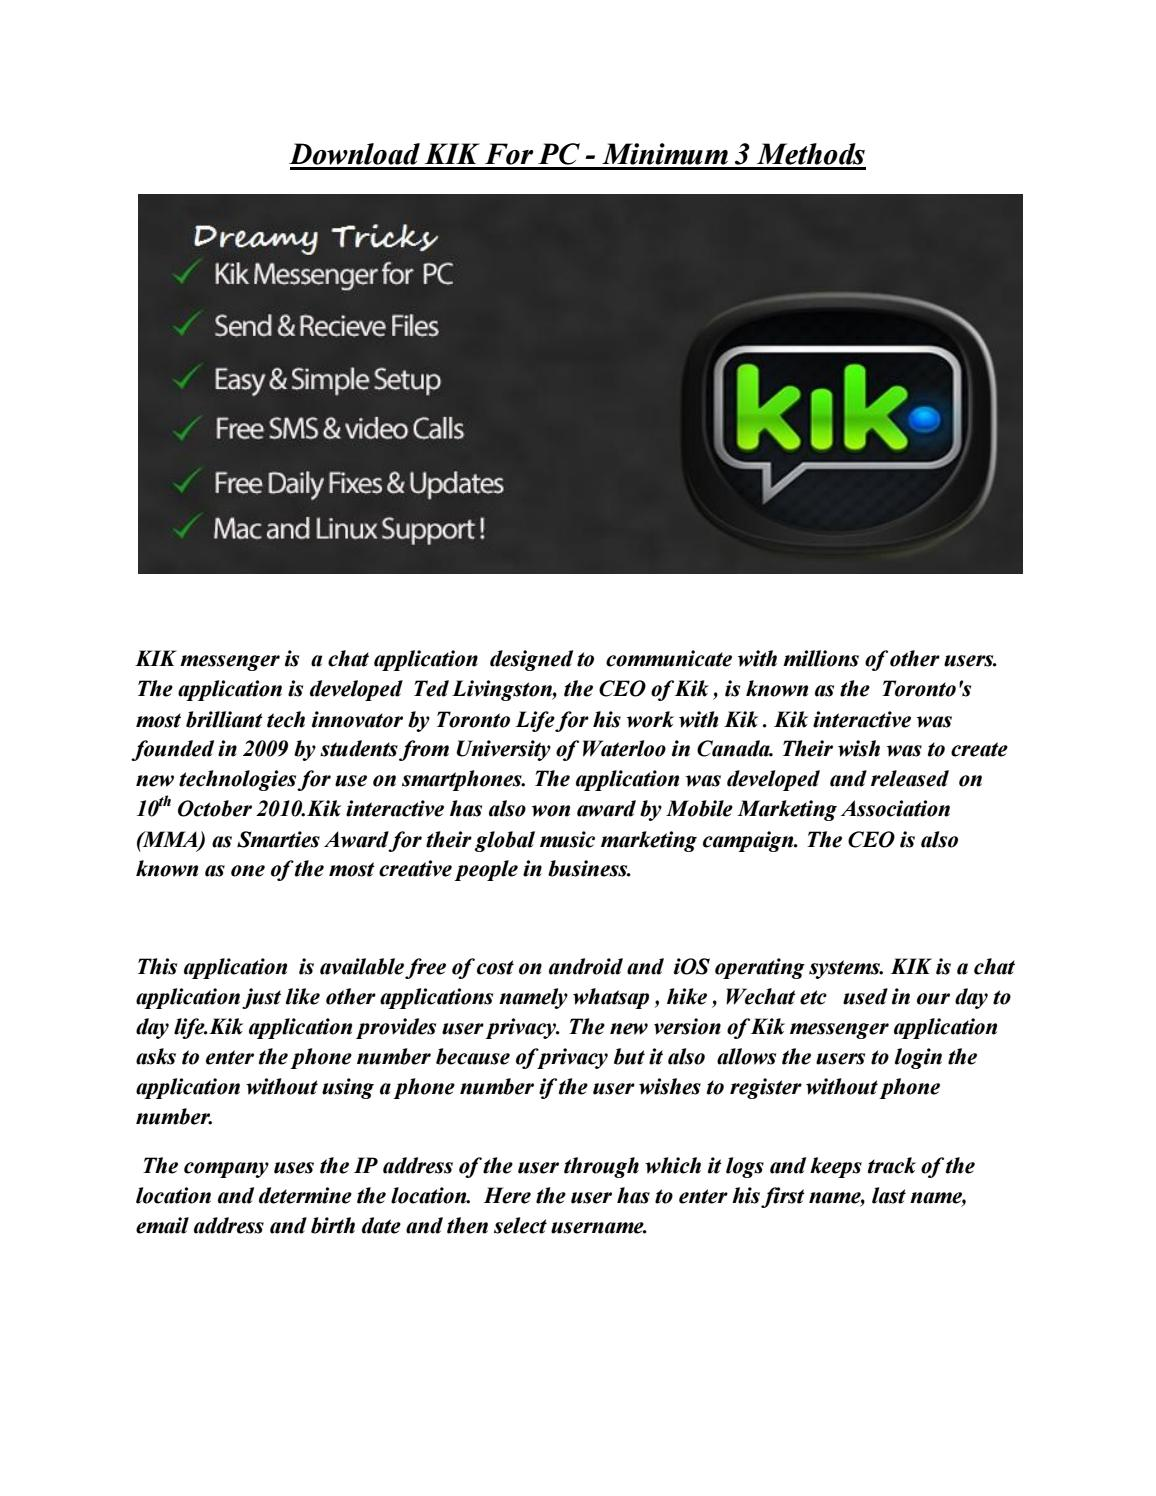 Kik for pc download latest version for windows 7810 by Anita